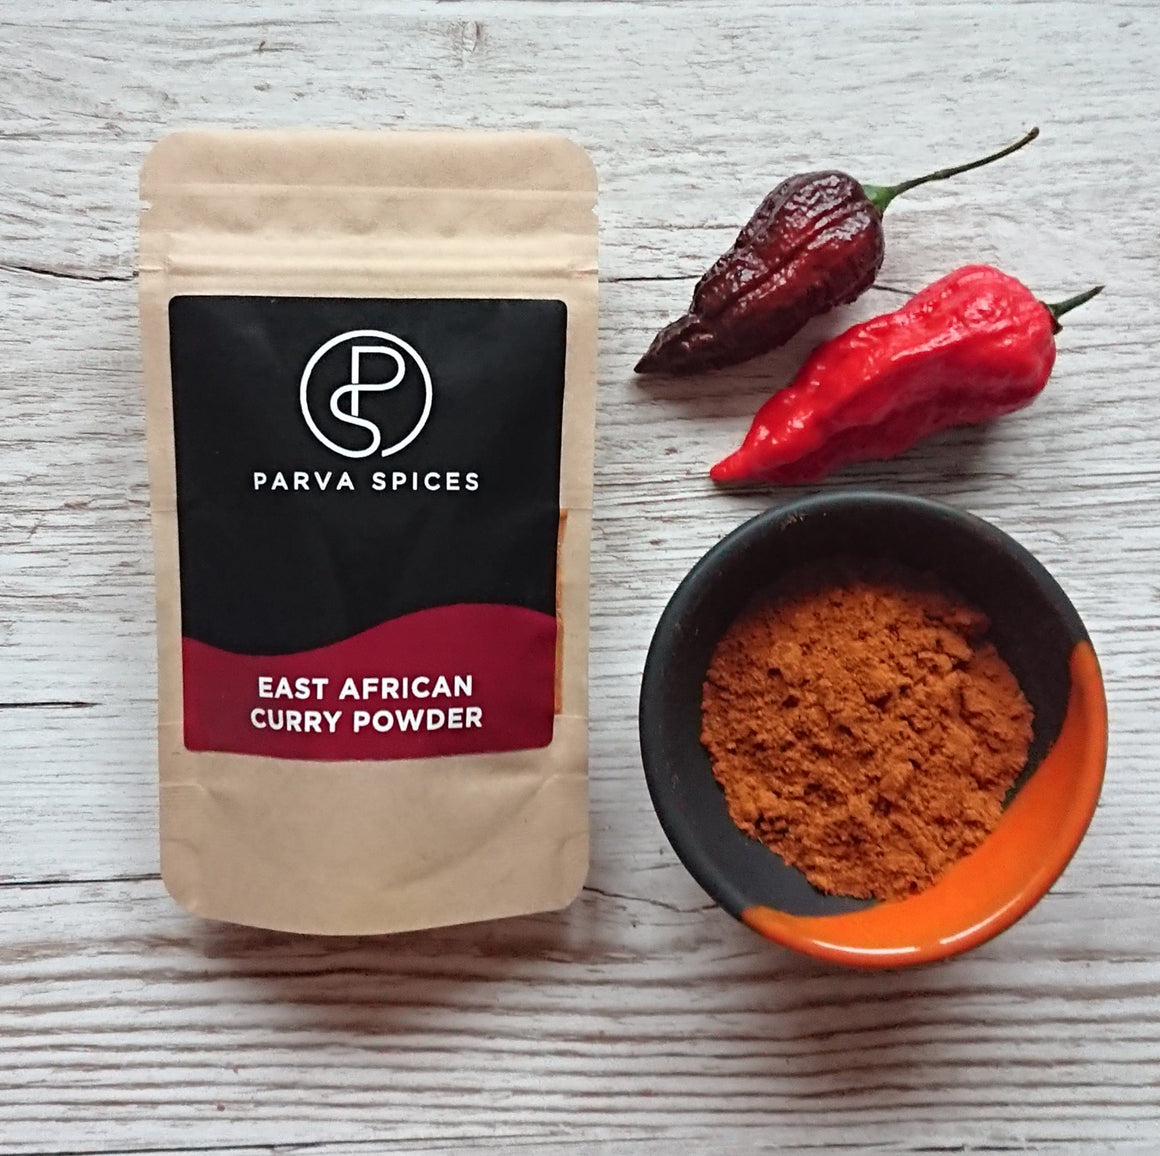 East African Curry Powder - Parva-Spices